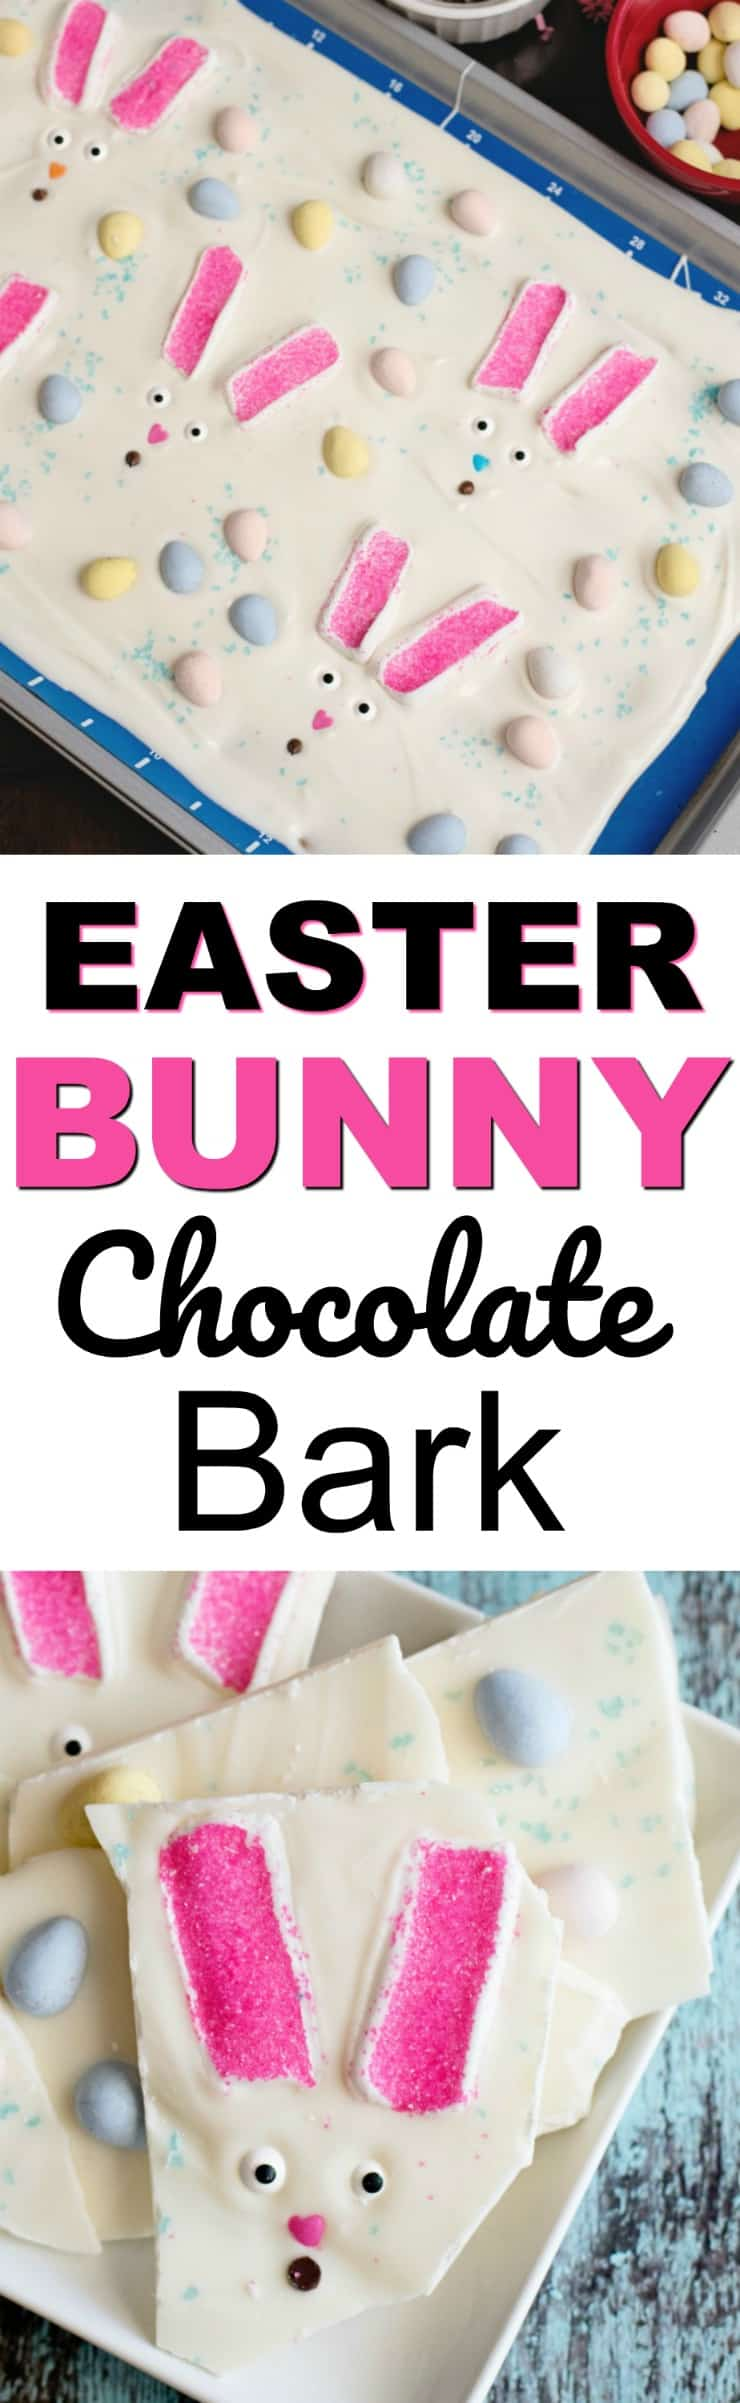 Easter Bunny Bark - Marshmallows, chocolate and any of your favorite easter candy make up this easy treat and great project to make with your kids